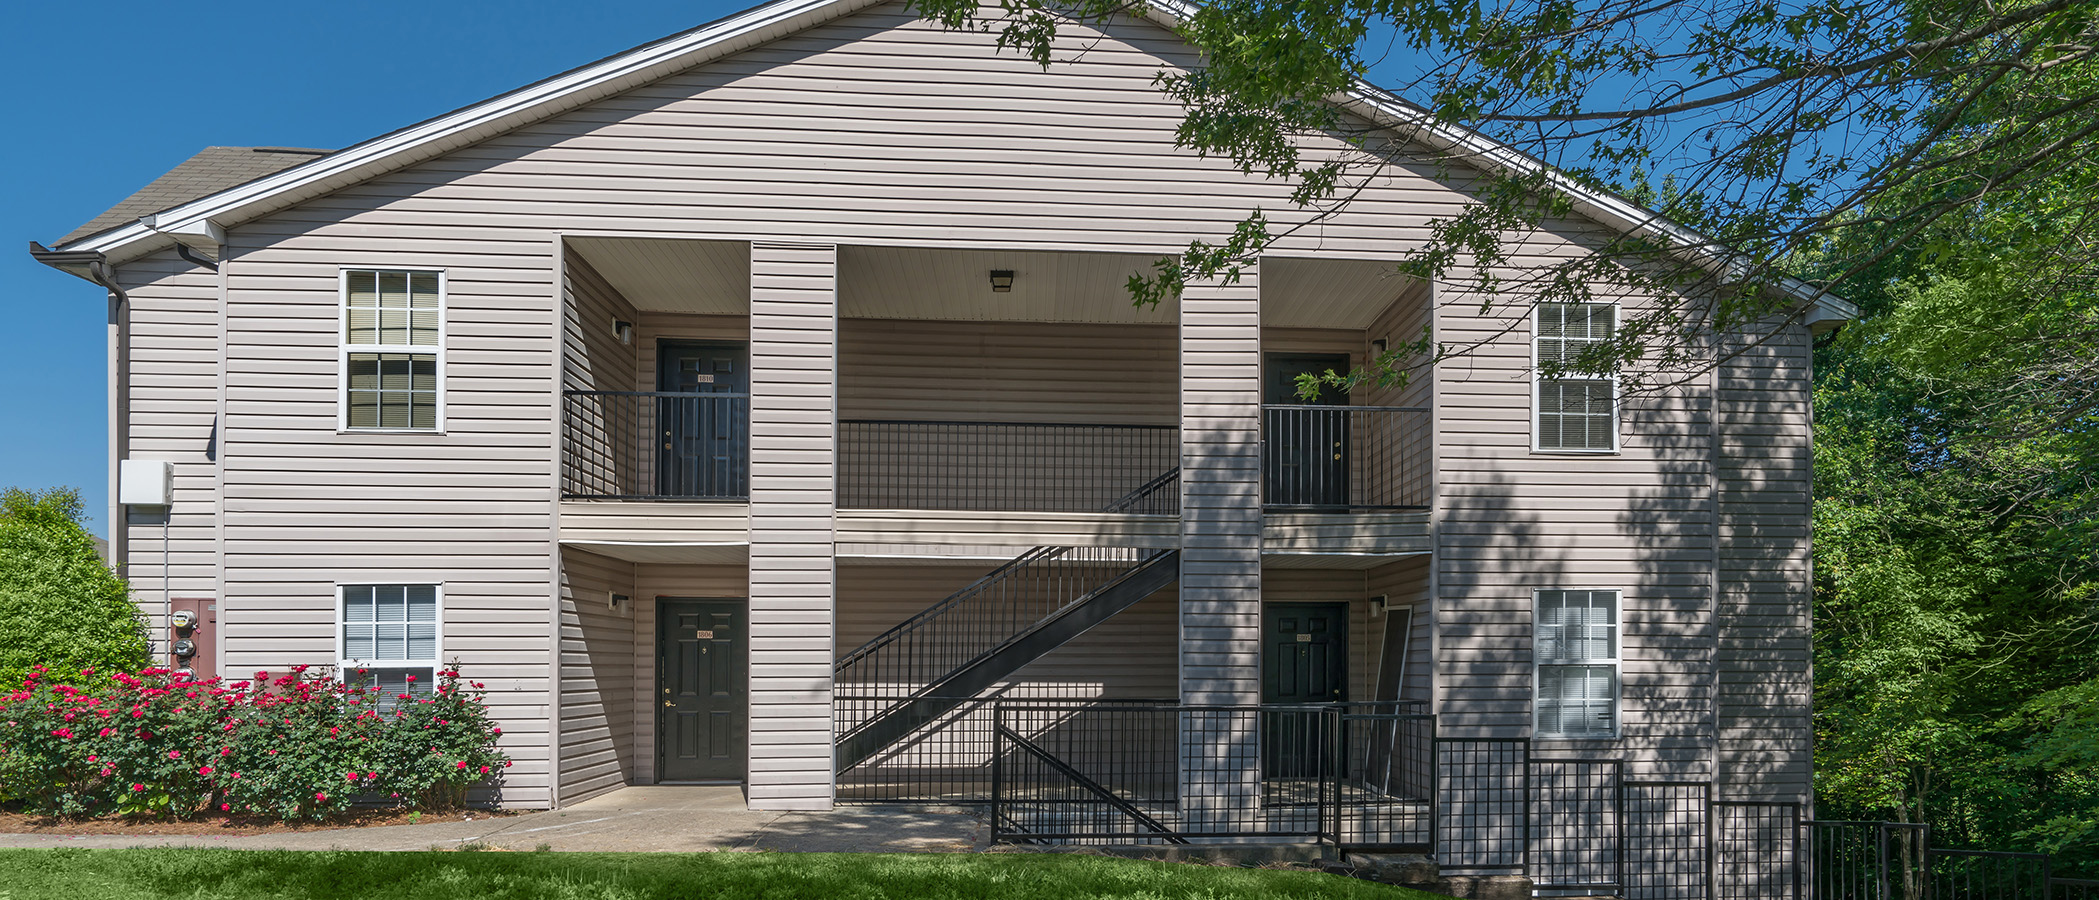 Willow pointe apartments in antioch tn - 3 bedroom apartments in antioch tn ...